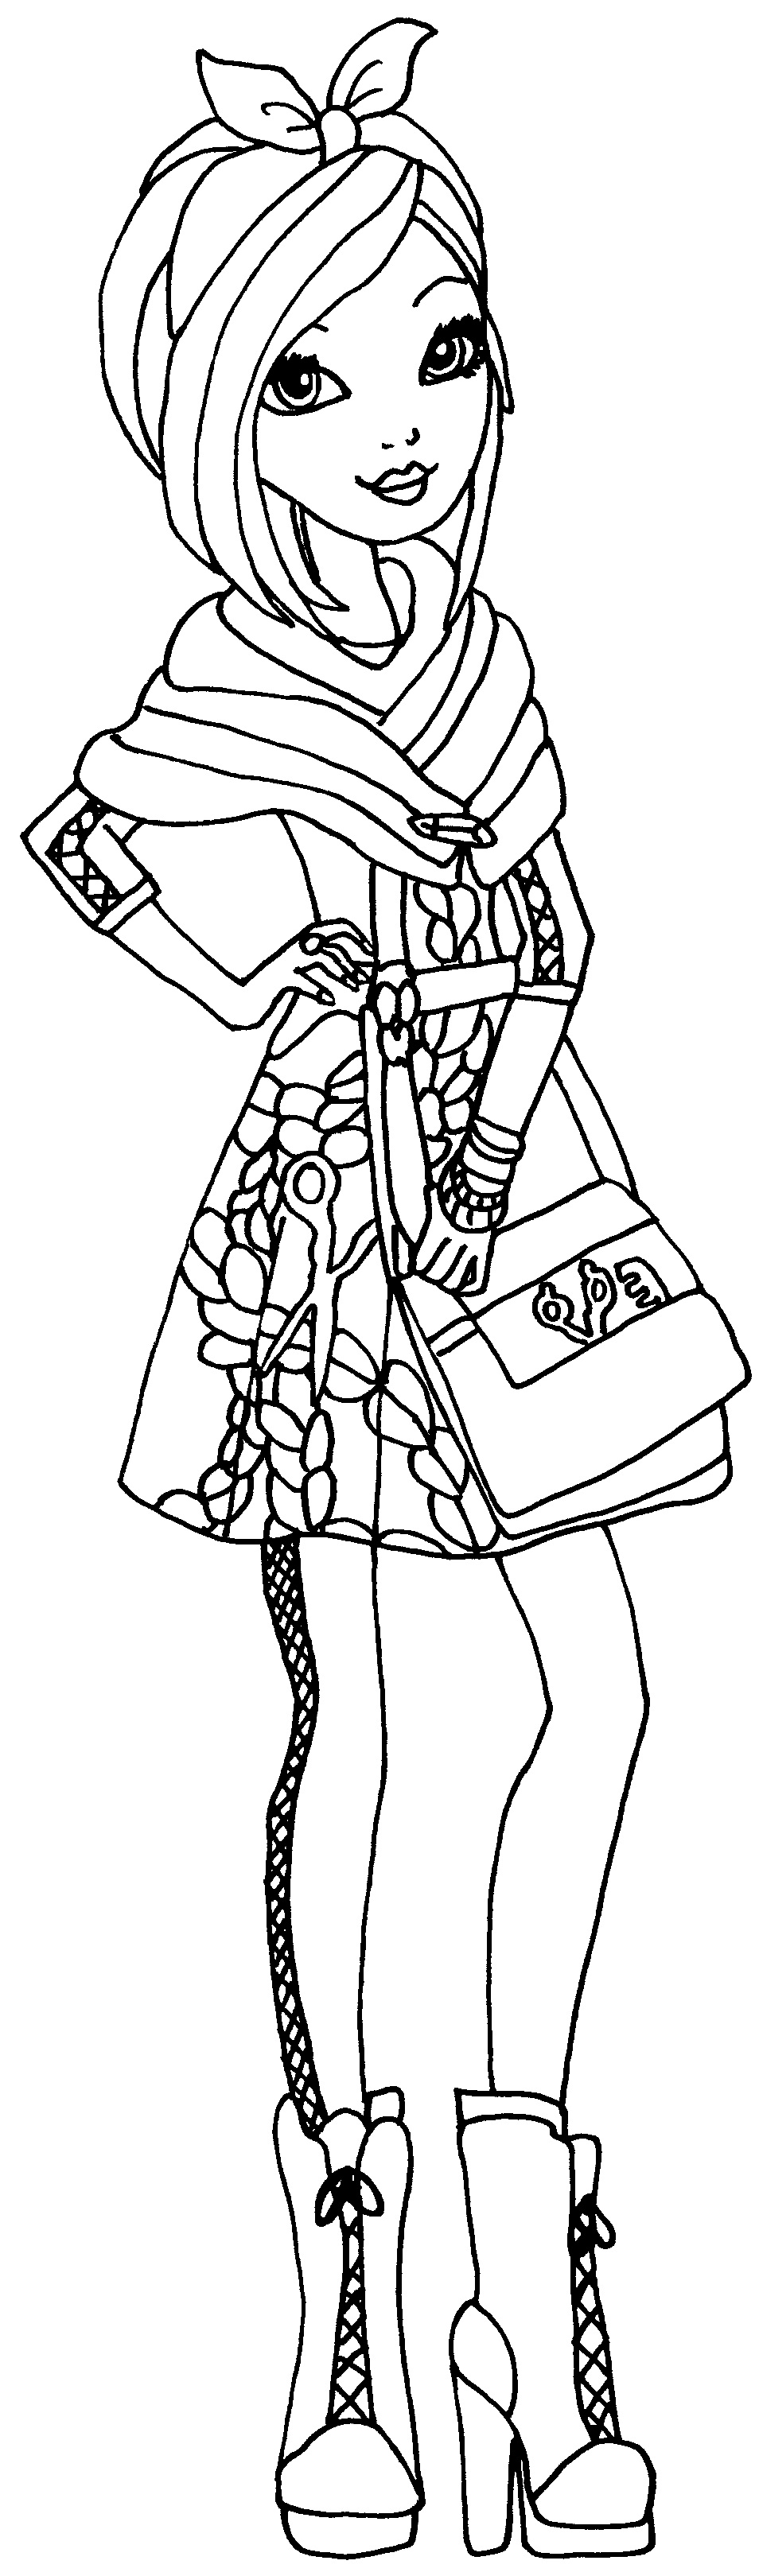 Colouring pages for ever after high - Colouring Pages For Ever After High 25